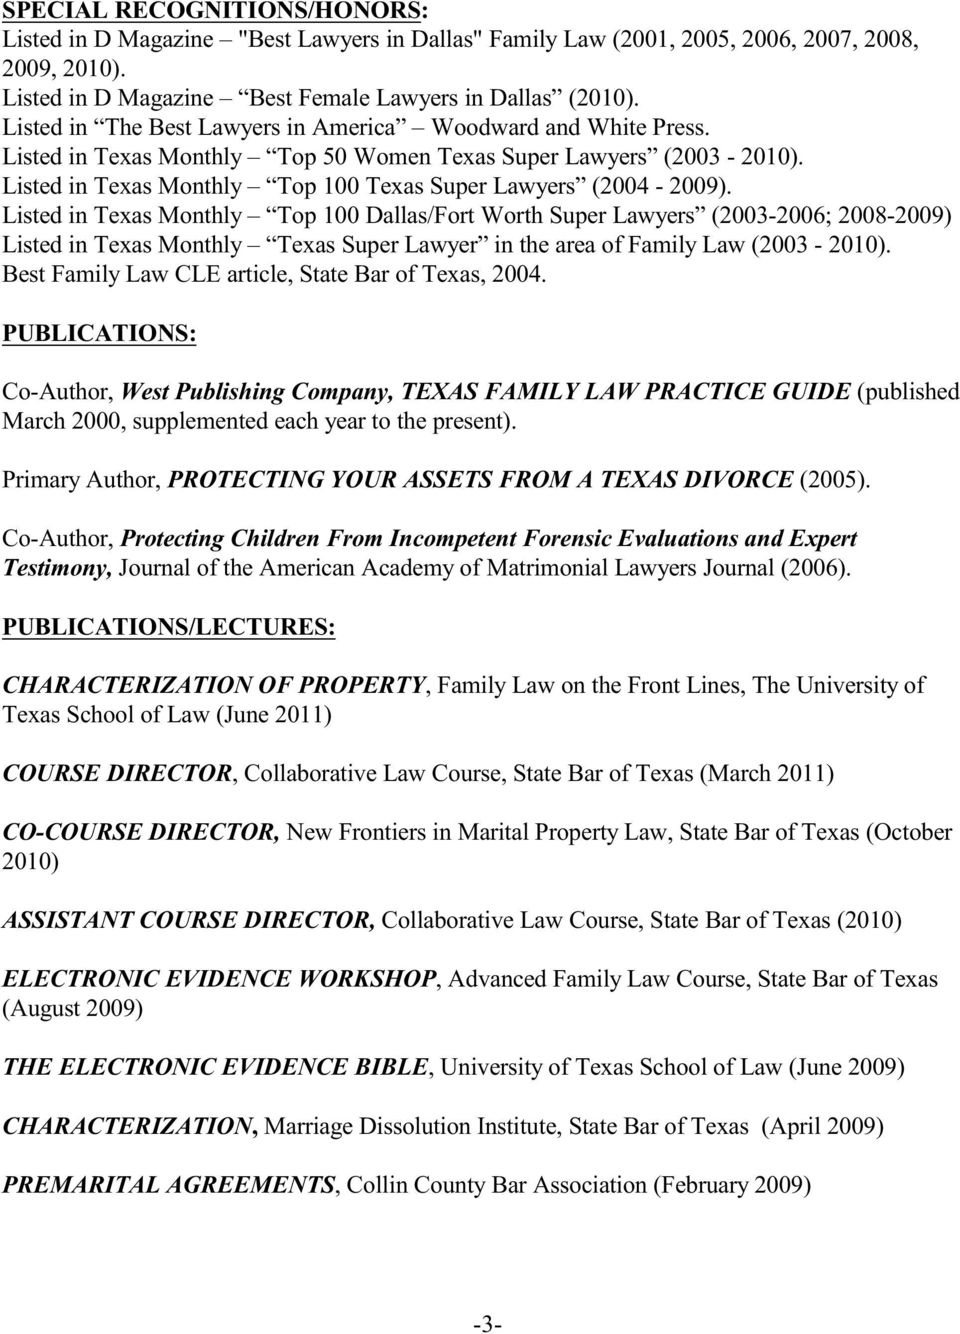 Lied in Texas Monly Top 100 Dallas/Fort Wor Super Lawyers (2003-2006; 2008-2009) Lied in Texas Monly Texas Super Lawyer in e area of Family Law (2003-2010).